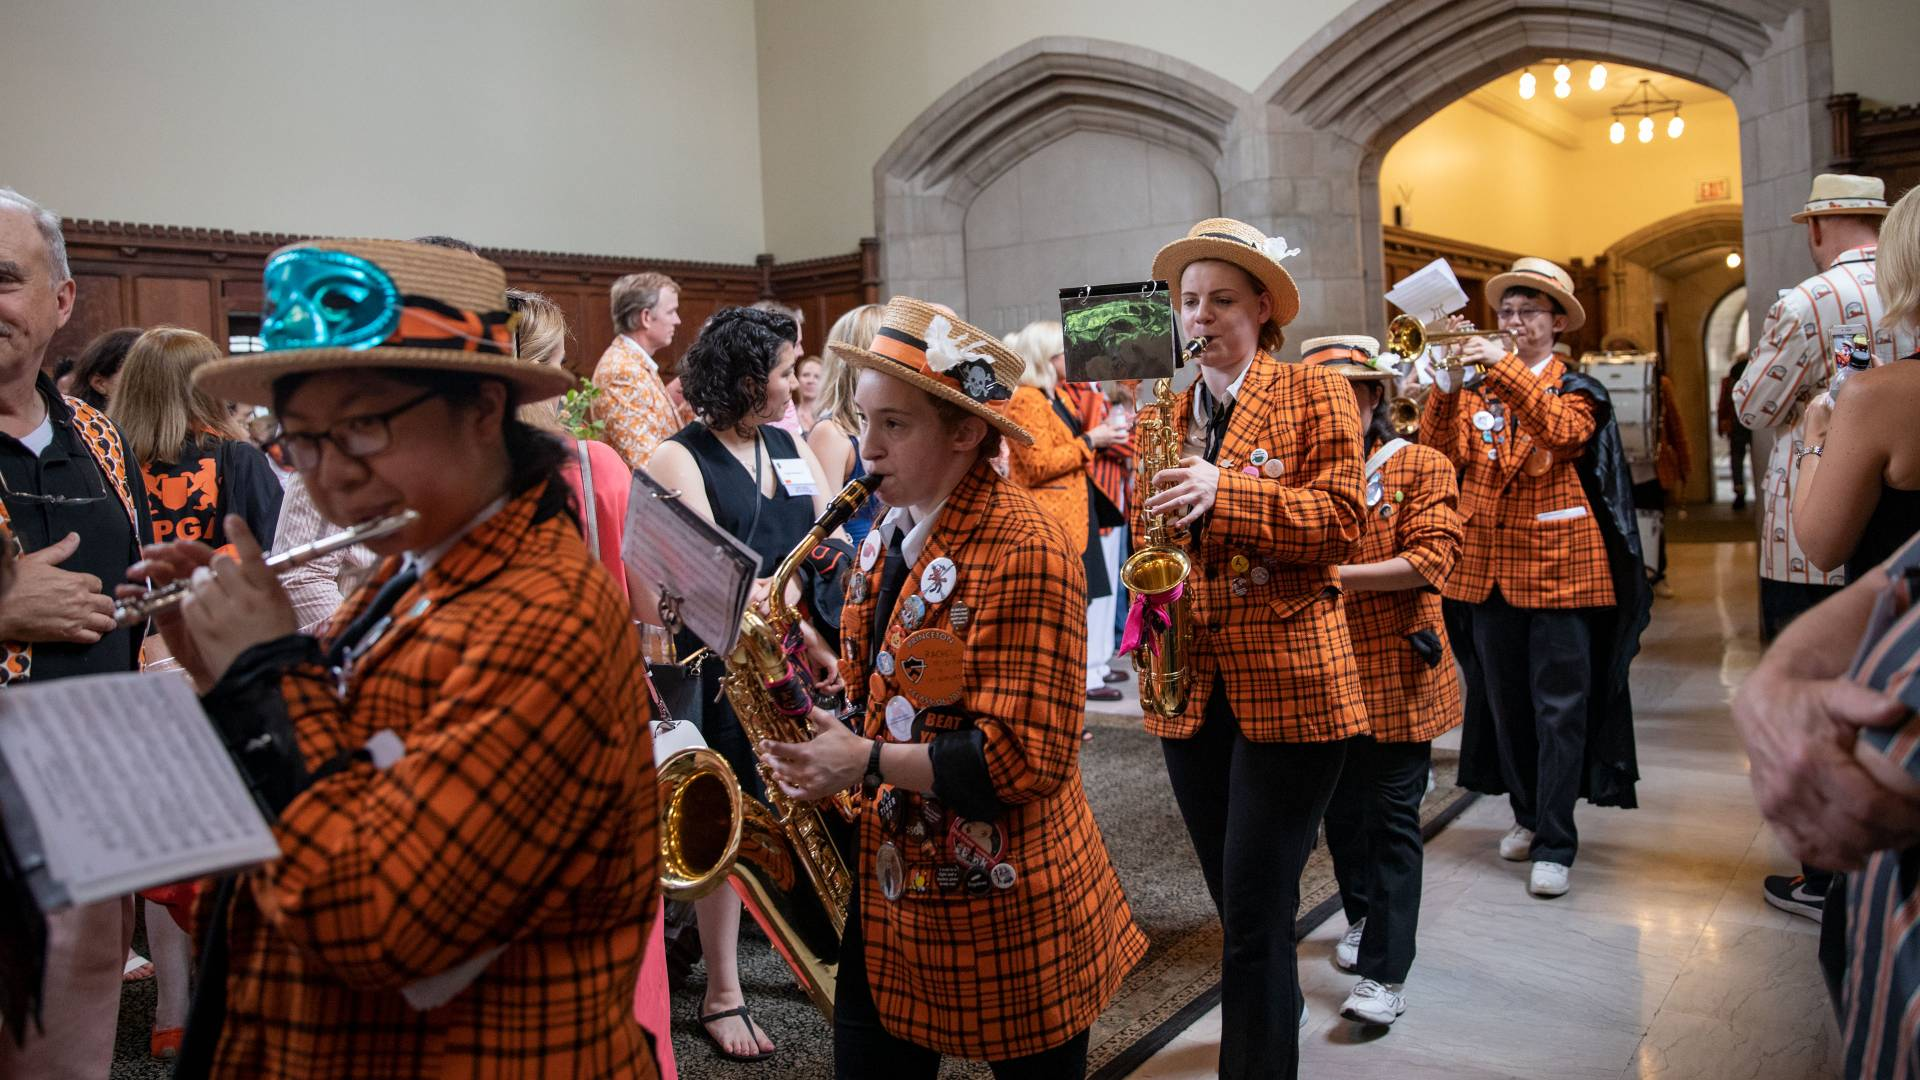 Princeton University Band marching through reunions reception